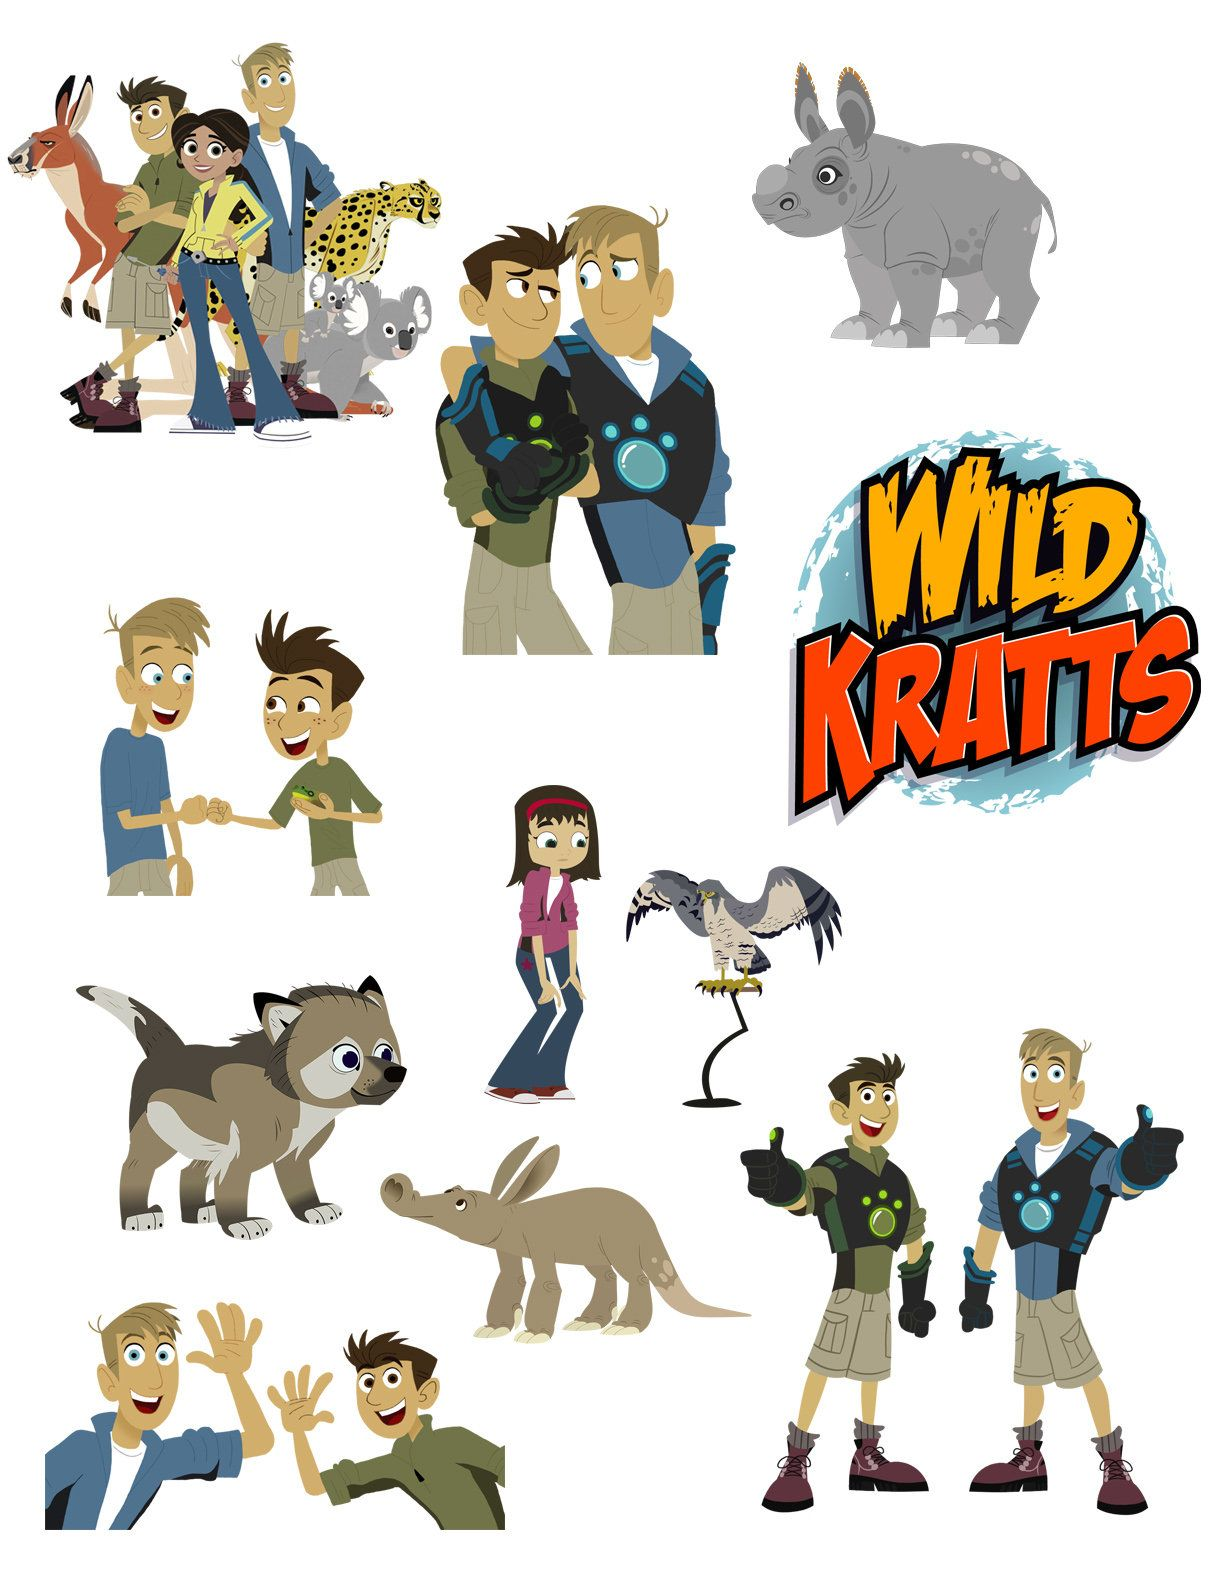 Wild Kratts Printouts Instant Download Clipart Imags Cutouts Etsy In 2020 Wild Kratts Birthday Party Wild Kratts Birthday Wild Kratts